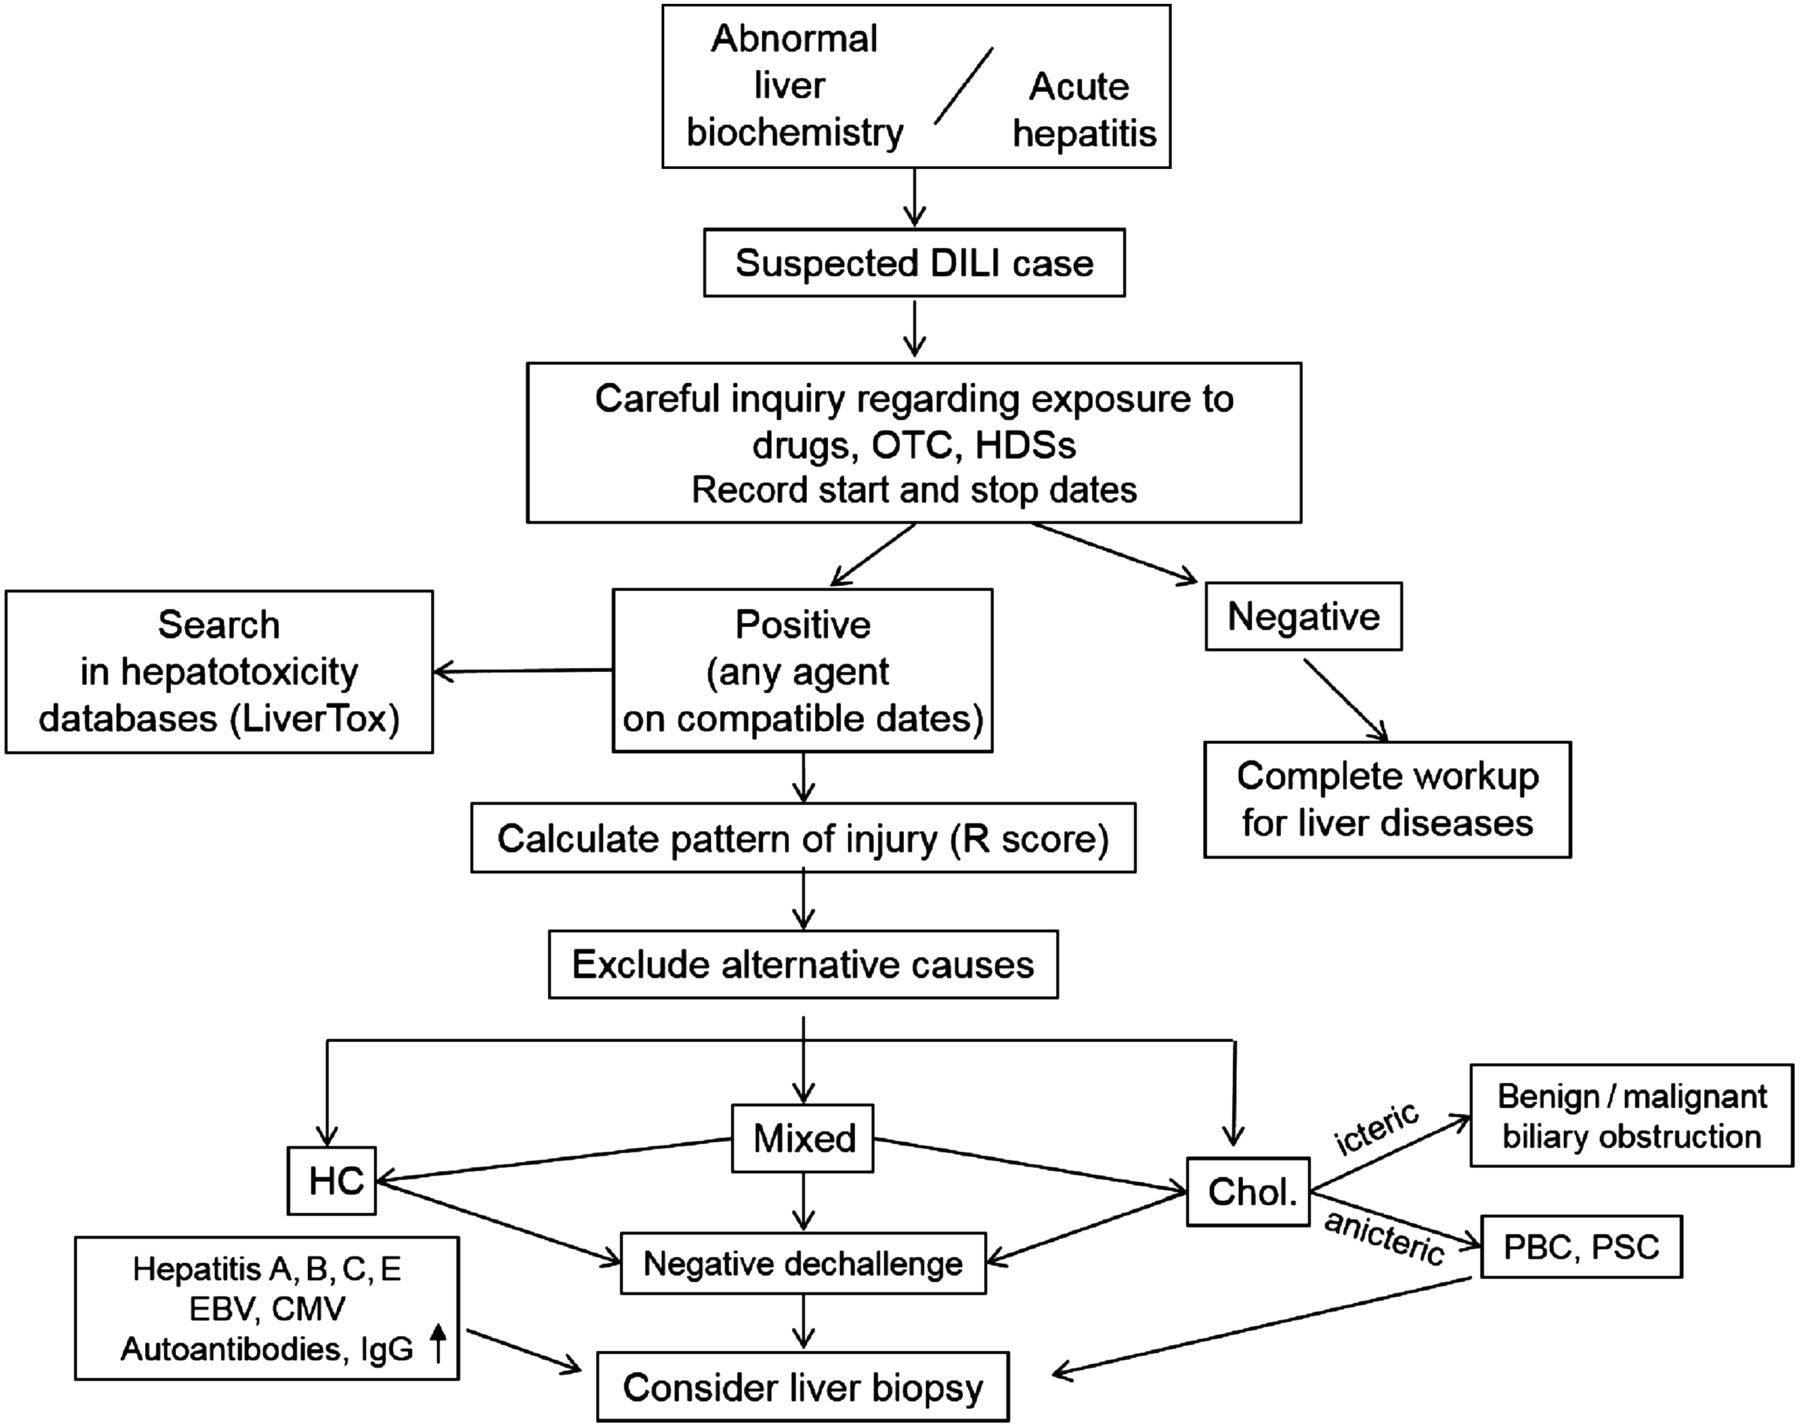 liver panel diagram tobin hot water thermostat wiring drug induced injury recent advances in diagnosis and risk download figure